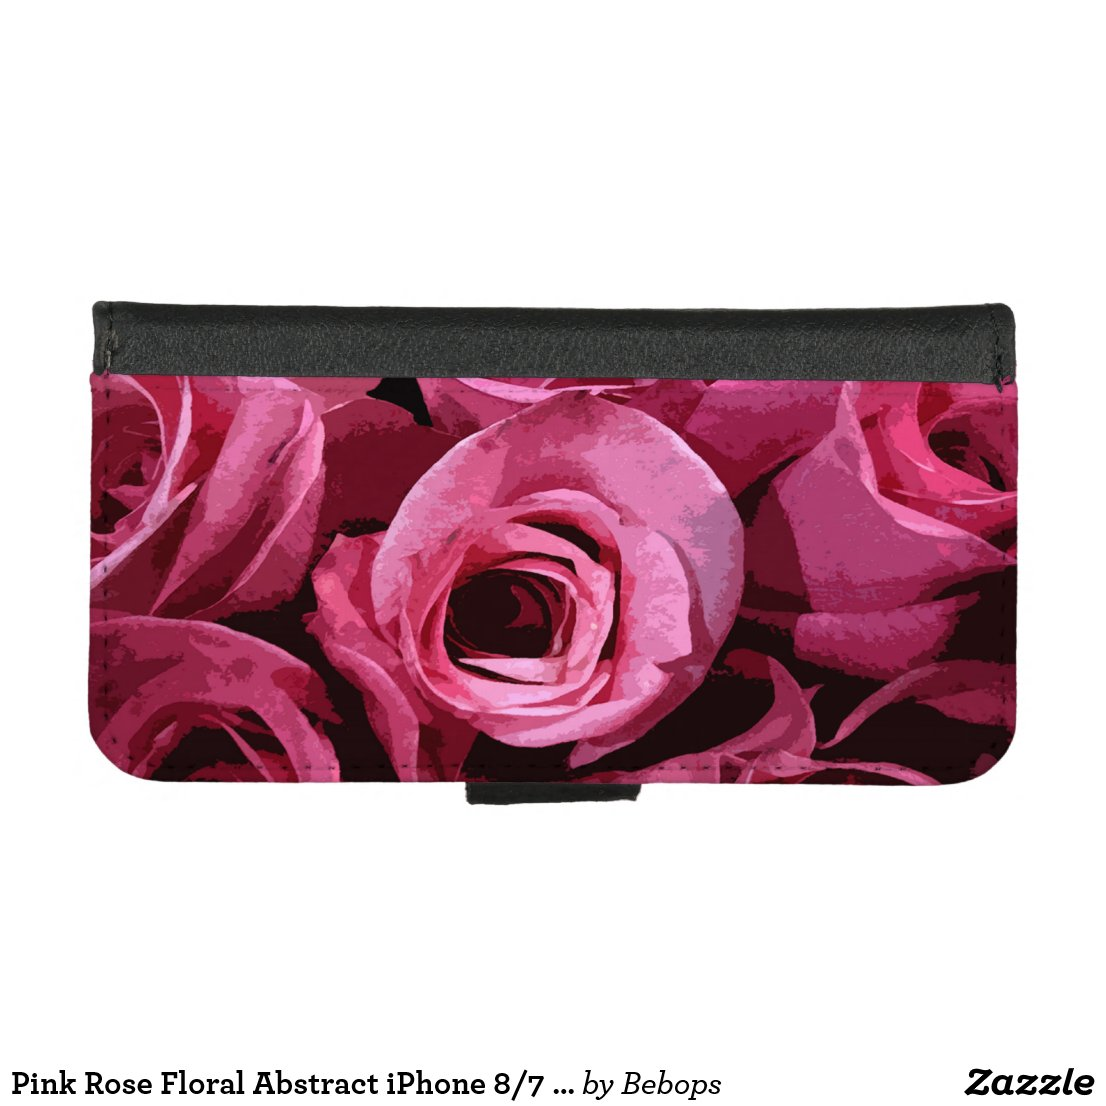 Pink Rose Floral Abstract iPhone 8/7 Wallet Case